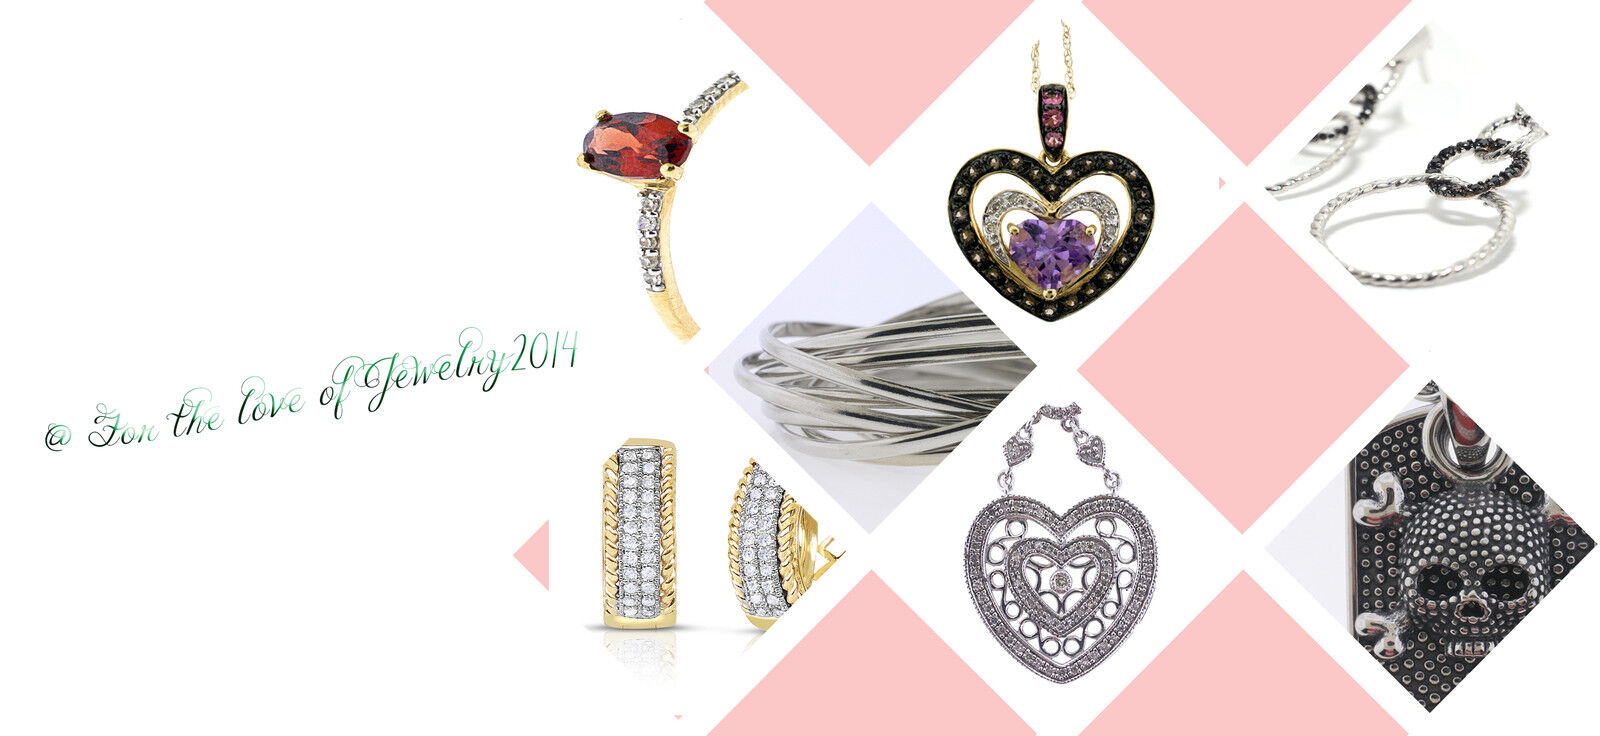 fortheloveofjewelry2014